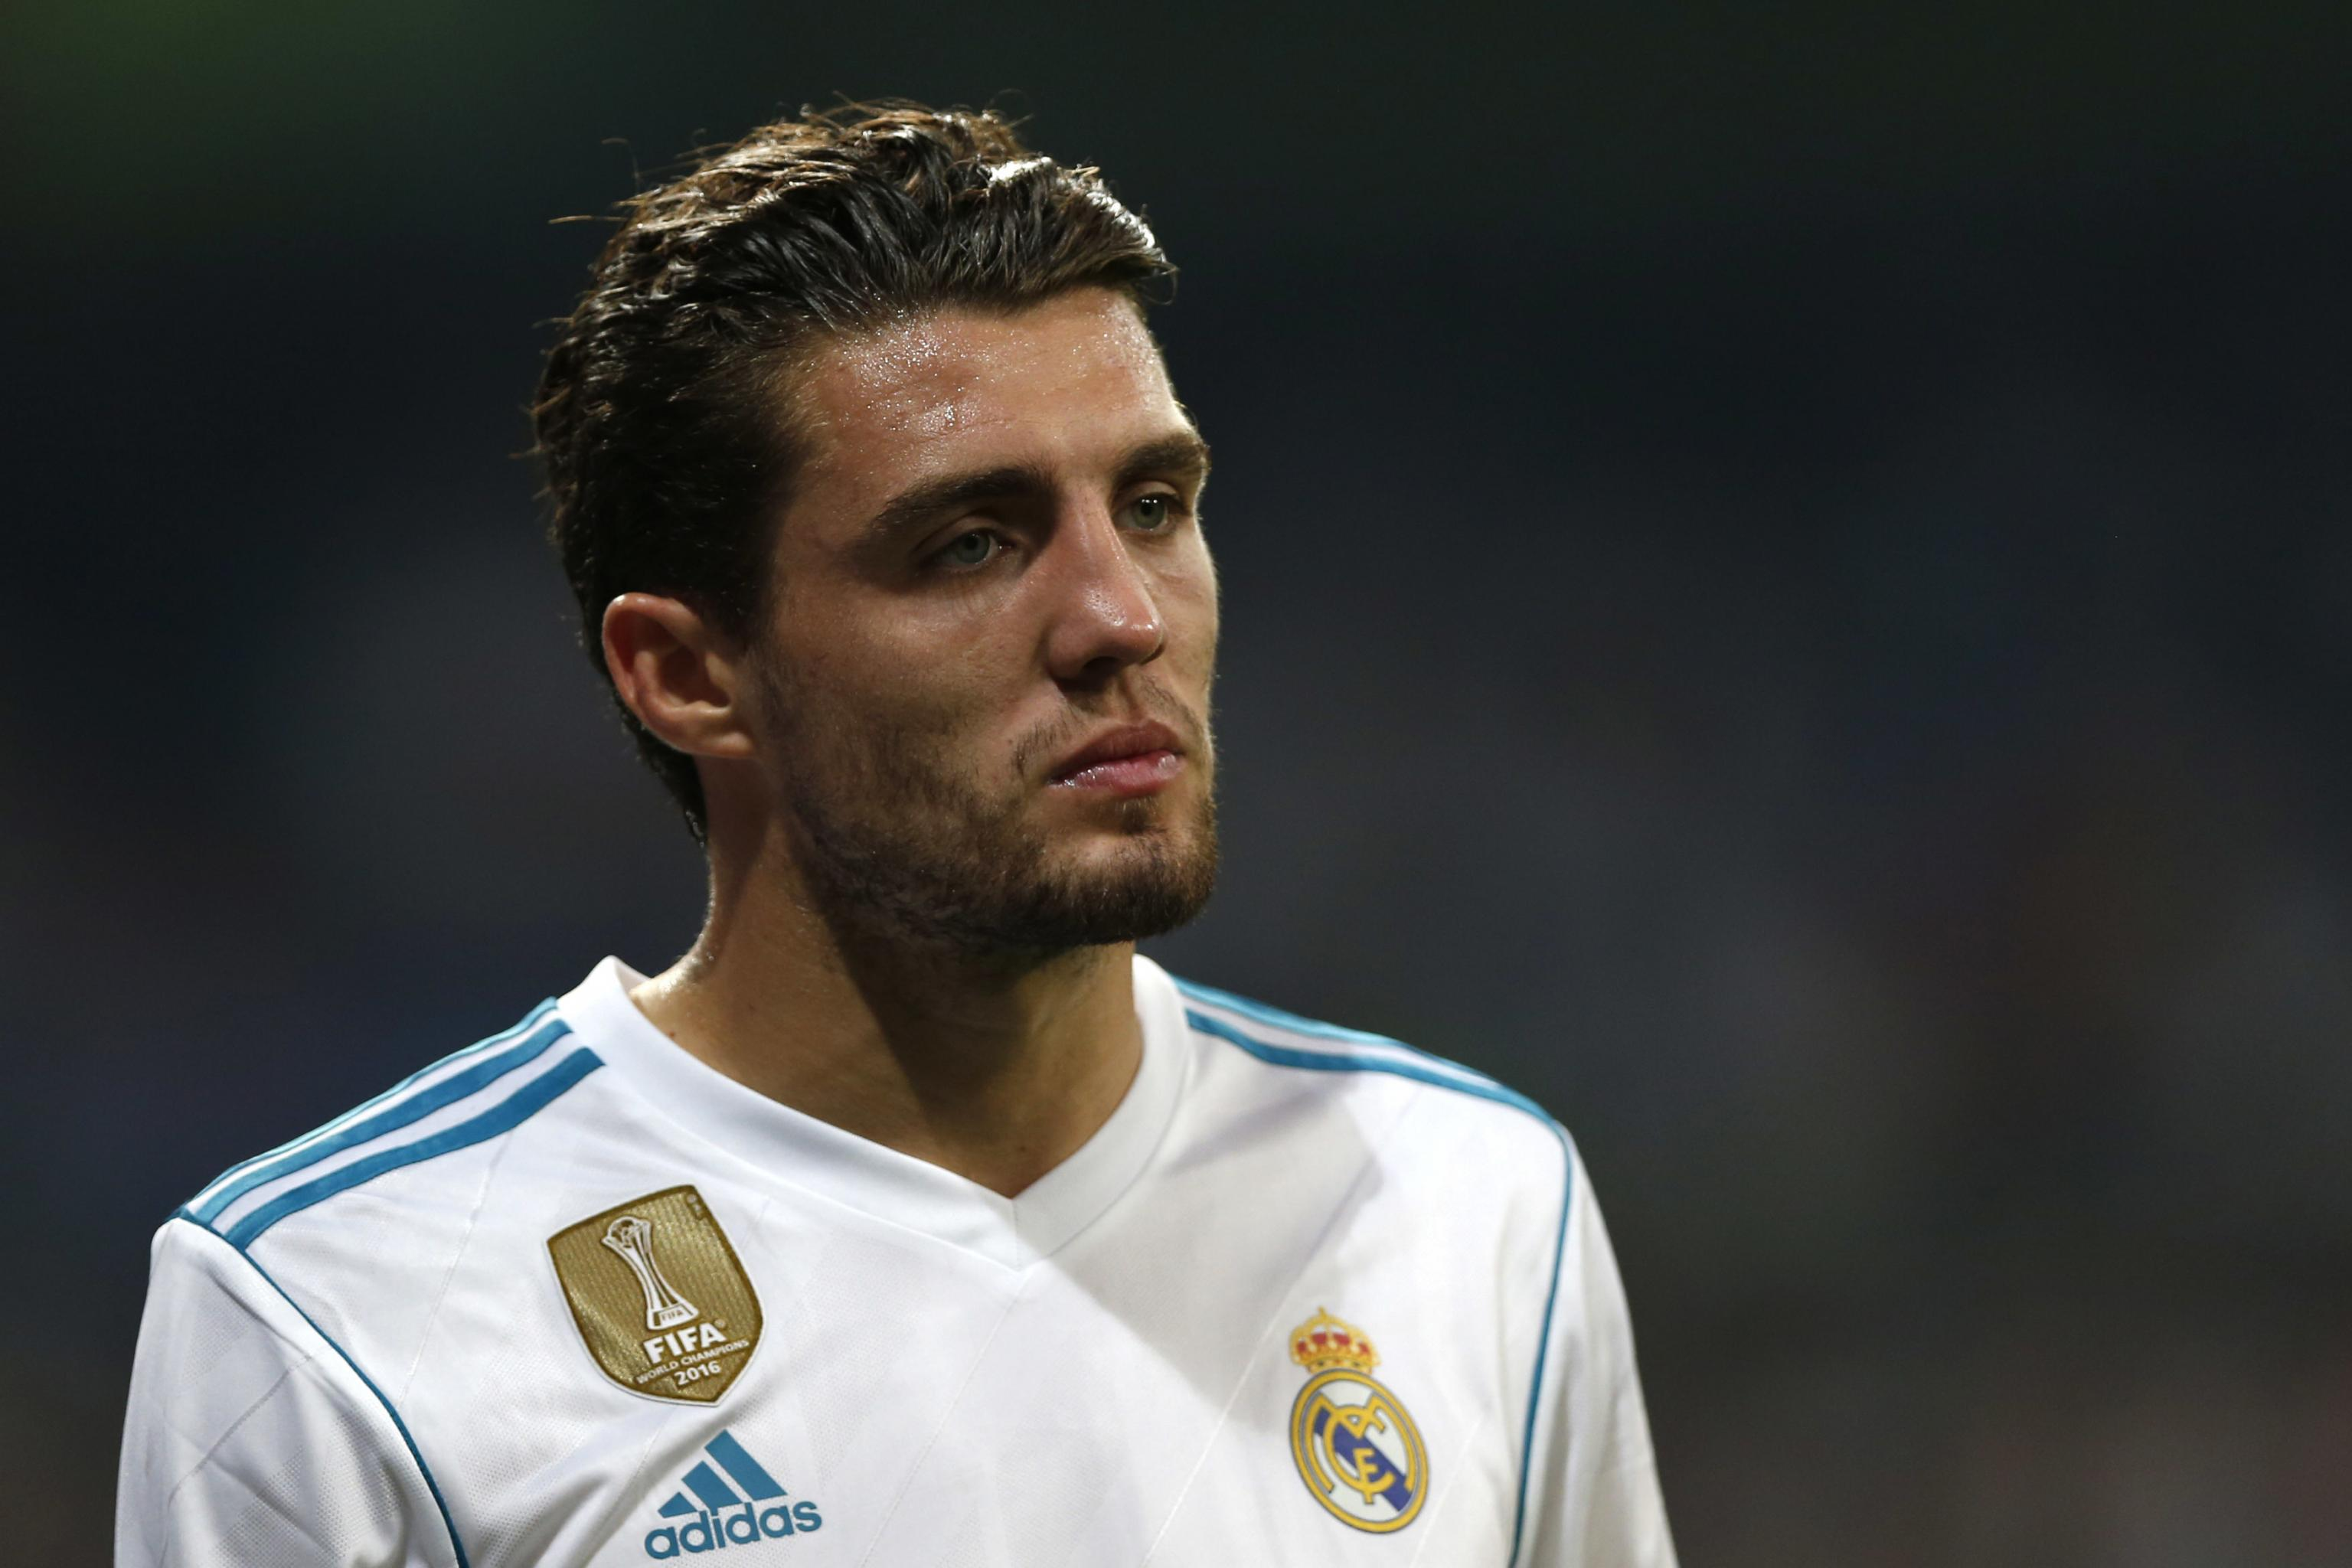 low priced 9b209 3f5c5 Real Madrid Transfer News: Mateo Kovacic Reportedly Set for ...